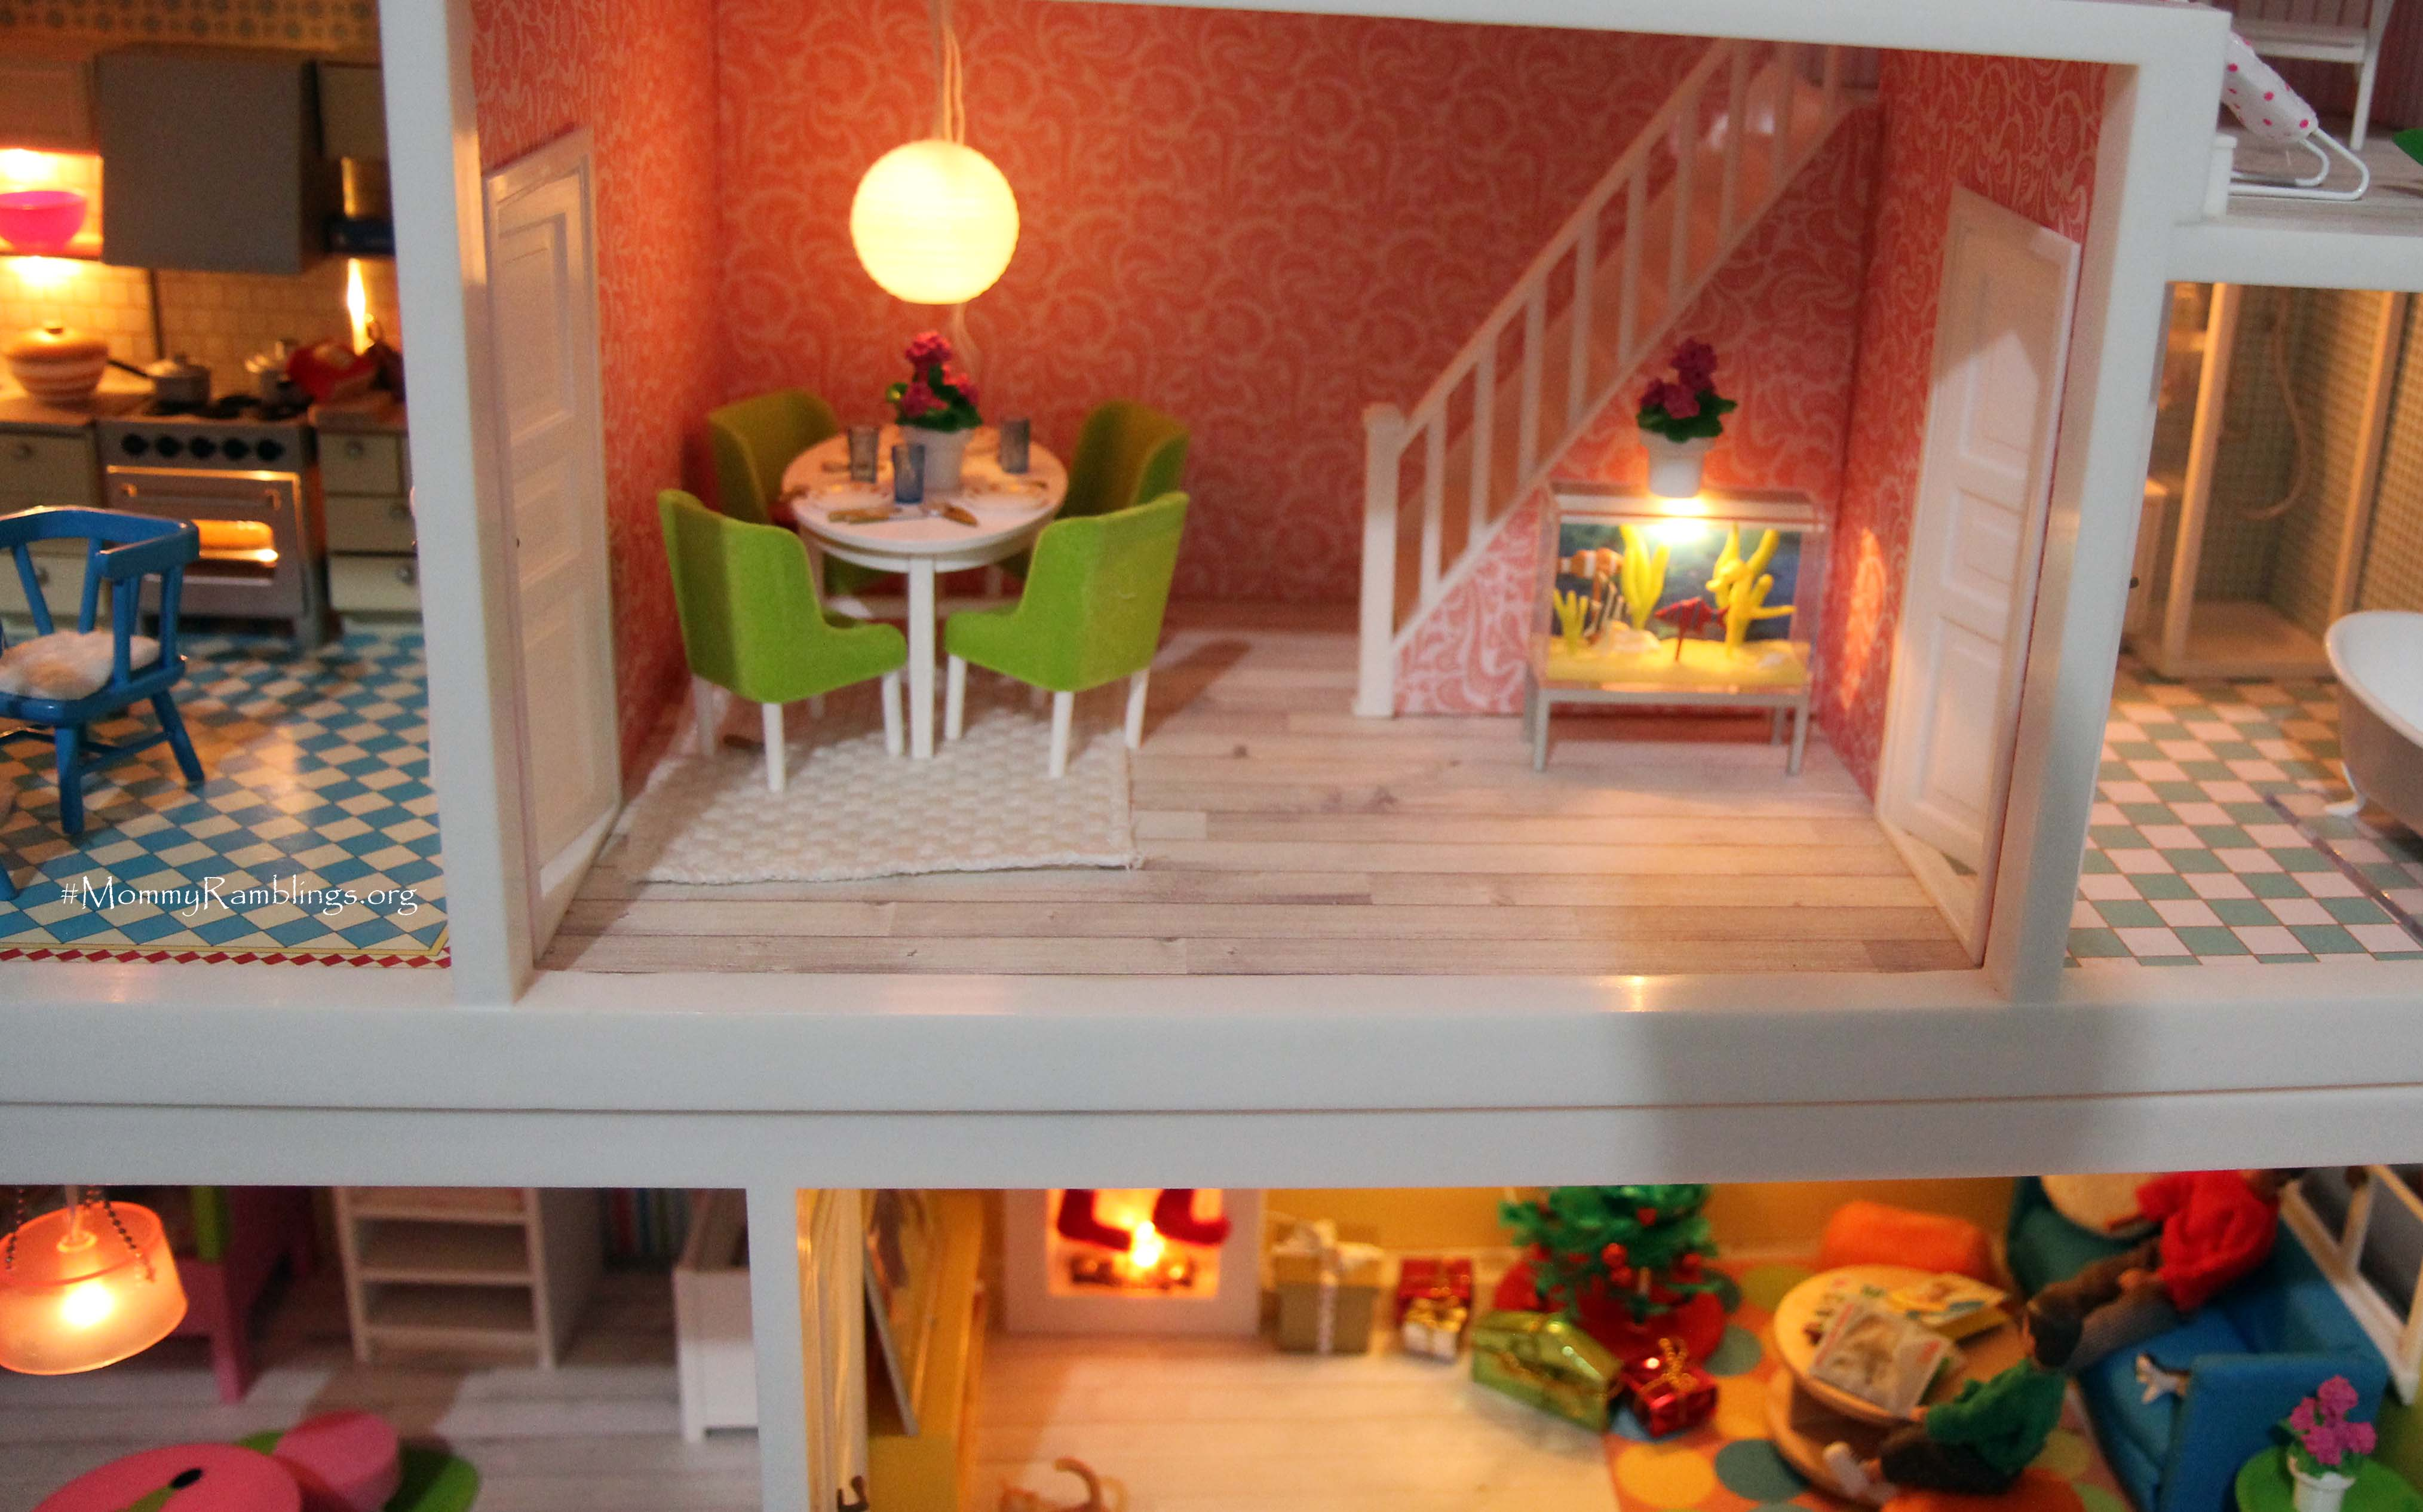 dollhouse lighting. For More Than 65 Years Lundby Smaland \u2013 Pioneers In Doll House Lighting And Design Has Offered High-quality Collectibles, Inspiring Creativity To Dollhouse